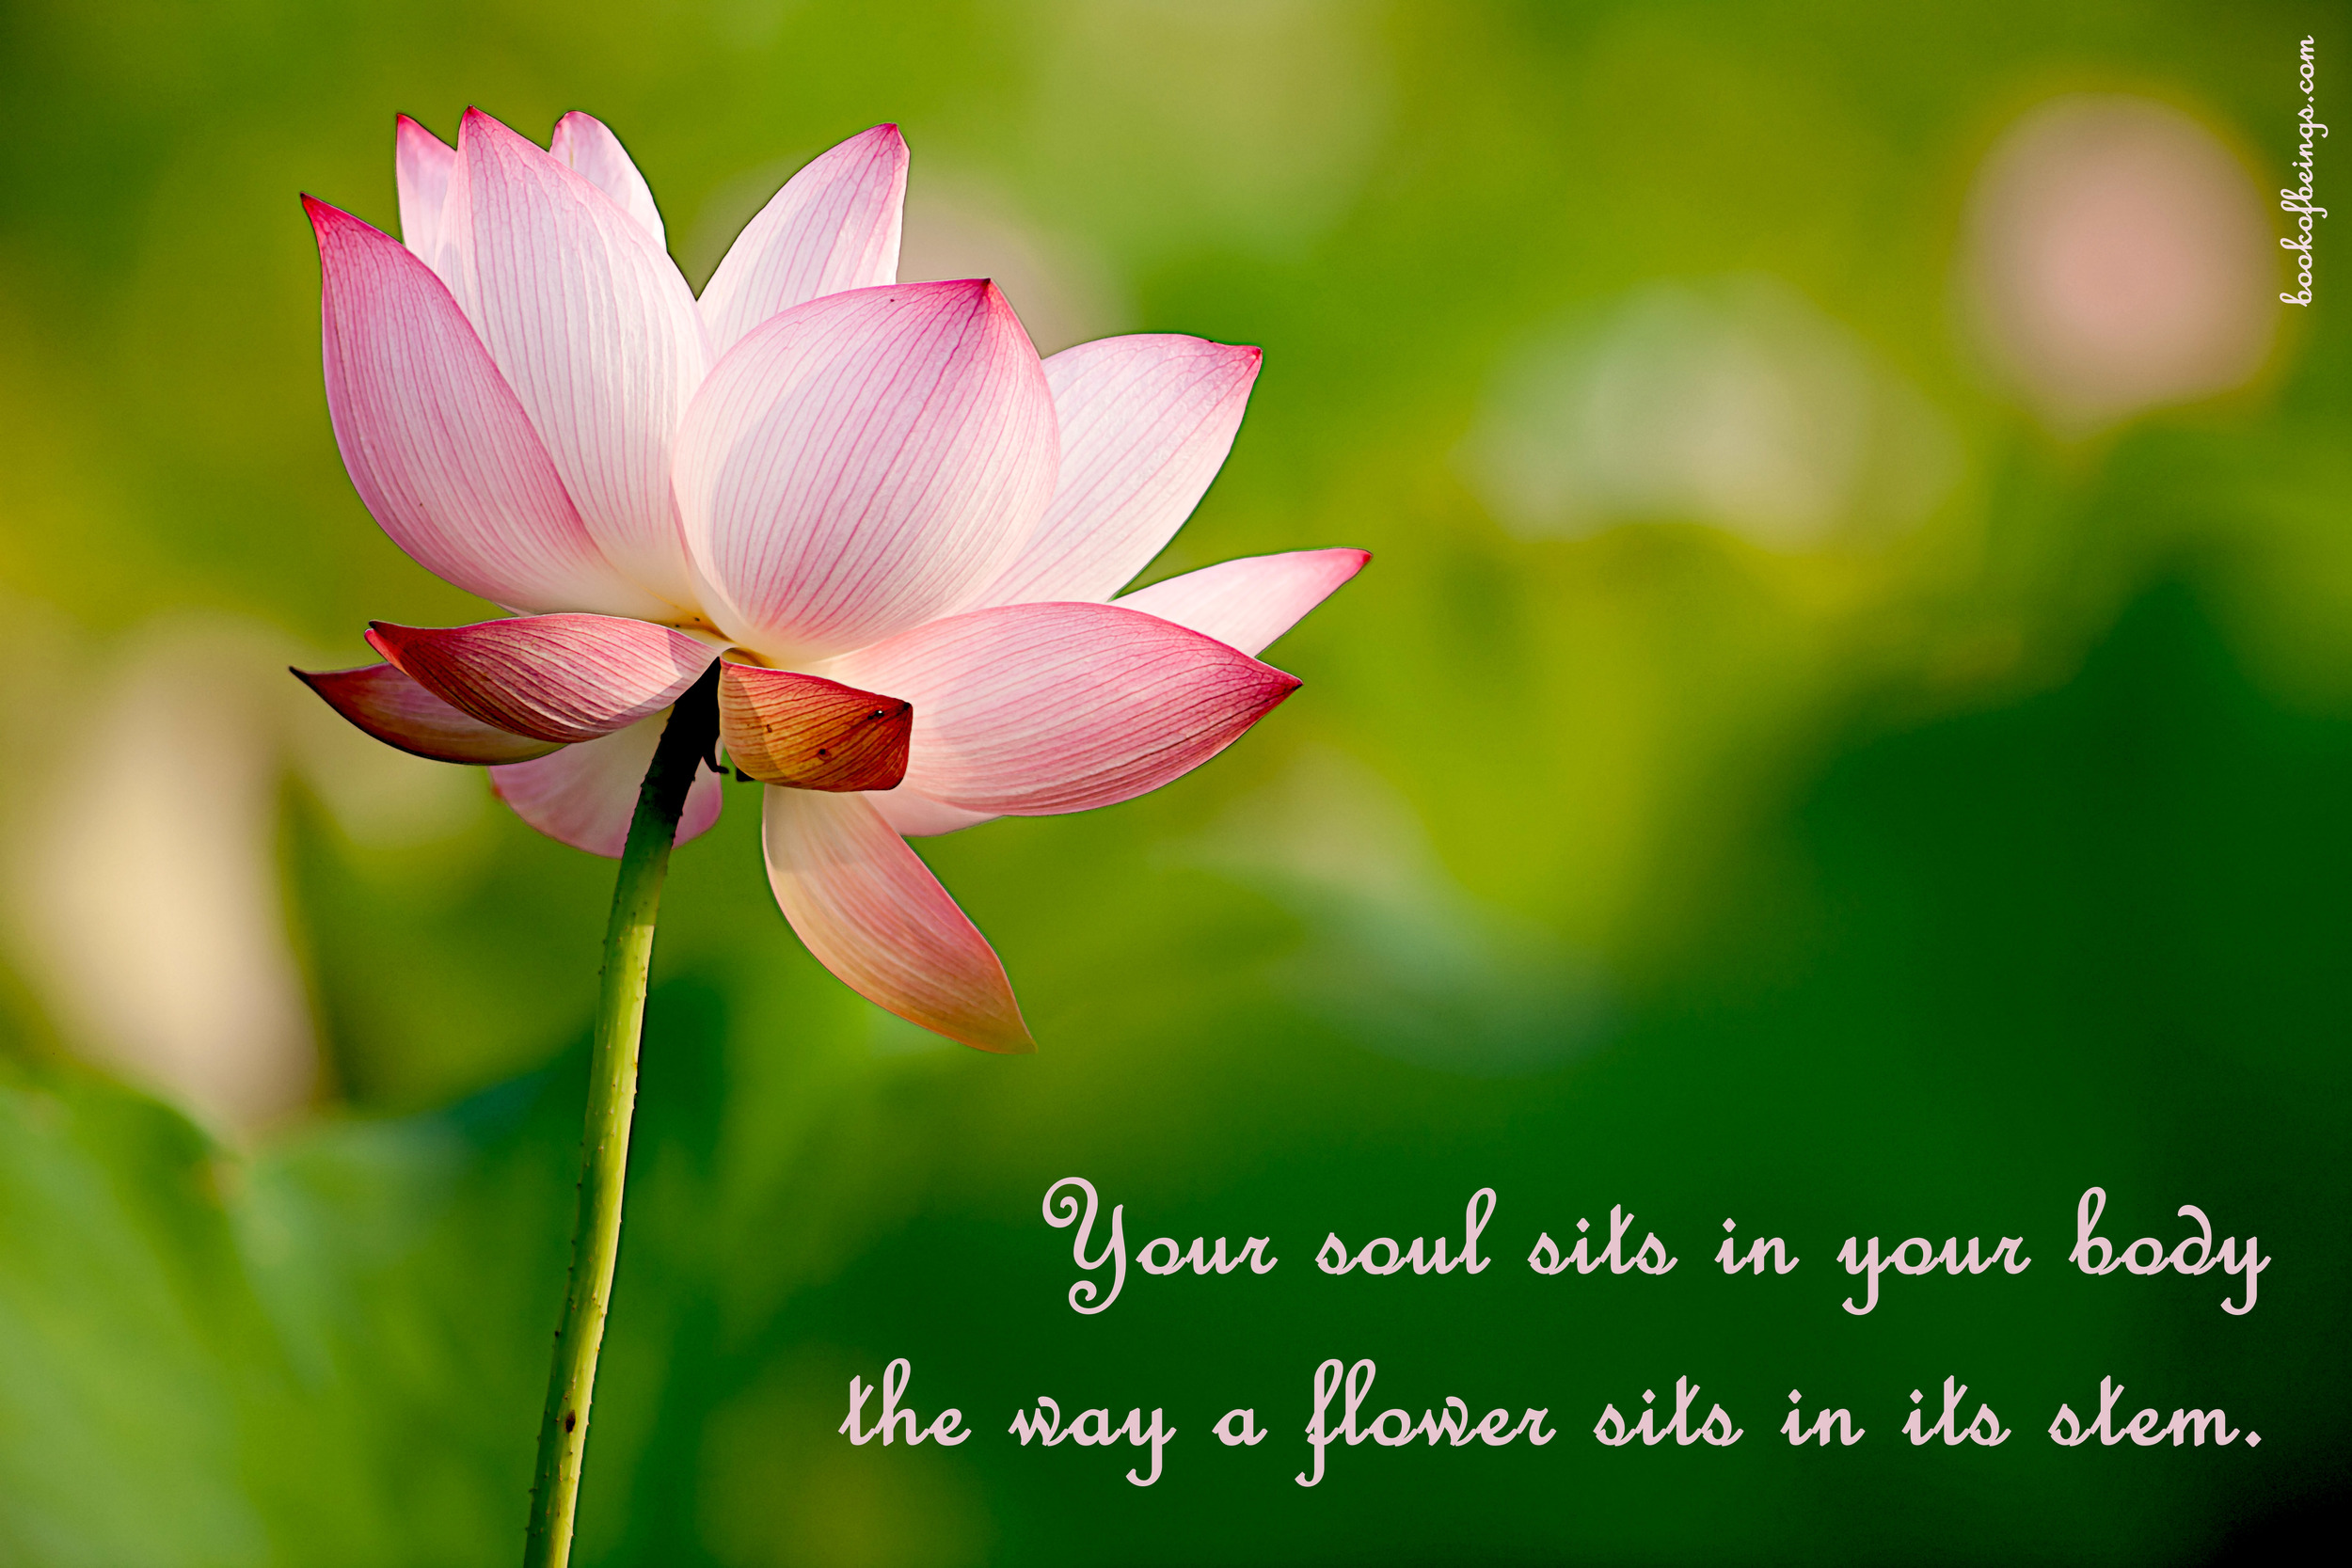 from Chapter 29  Your soul sits in your body the way a flower sits in its stem.  The Book of Beings Read-Along at  bookofbeings.com